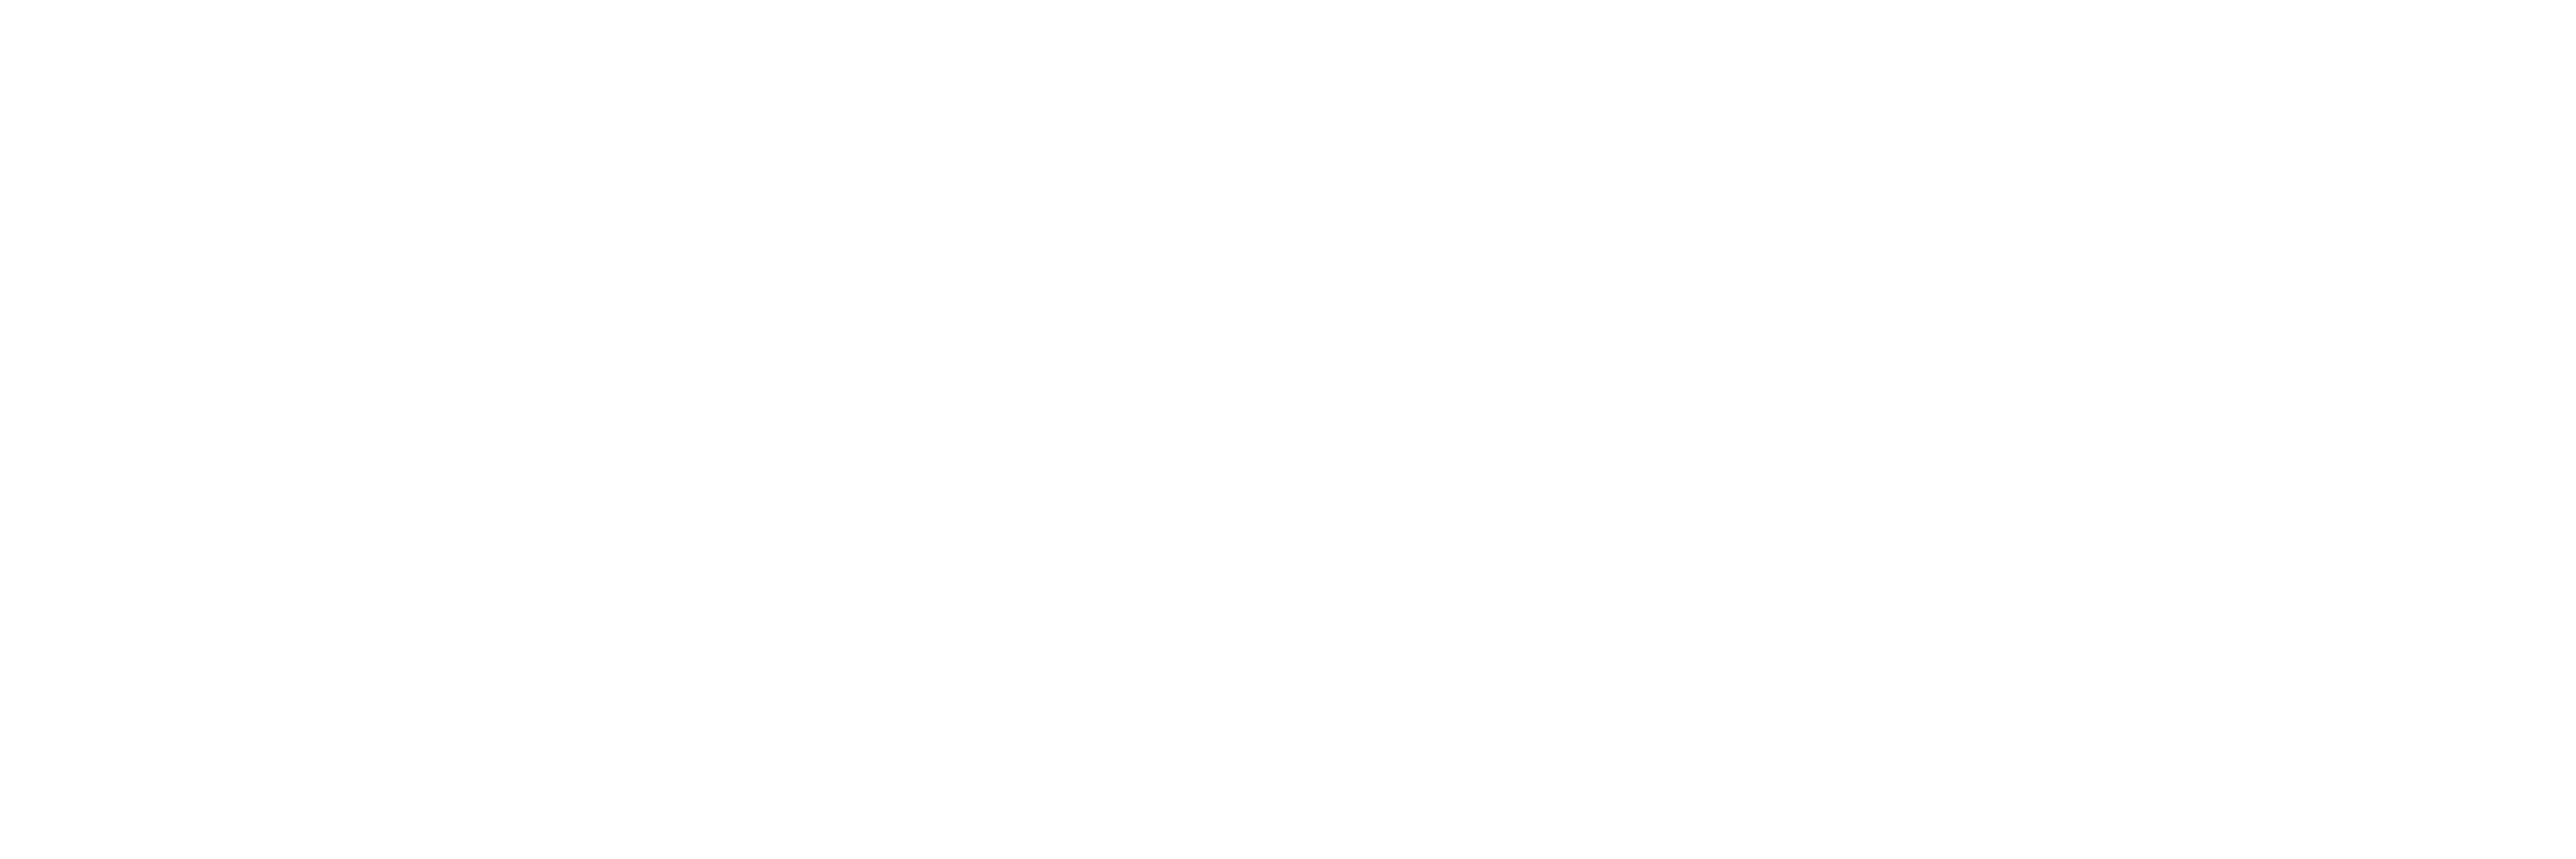 droplet wave icon